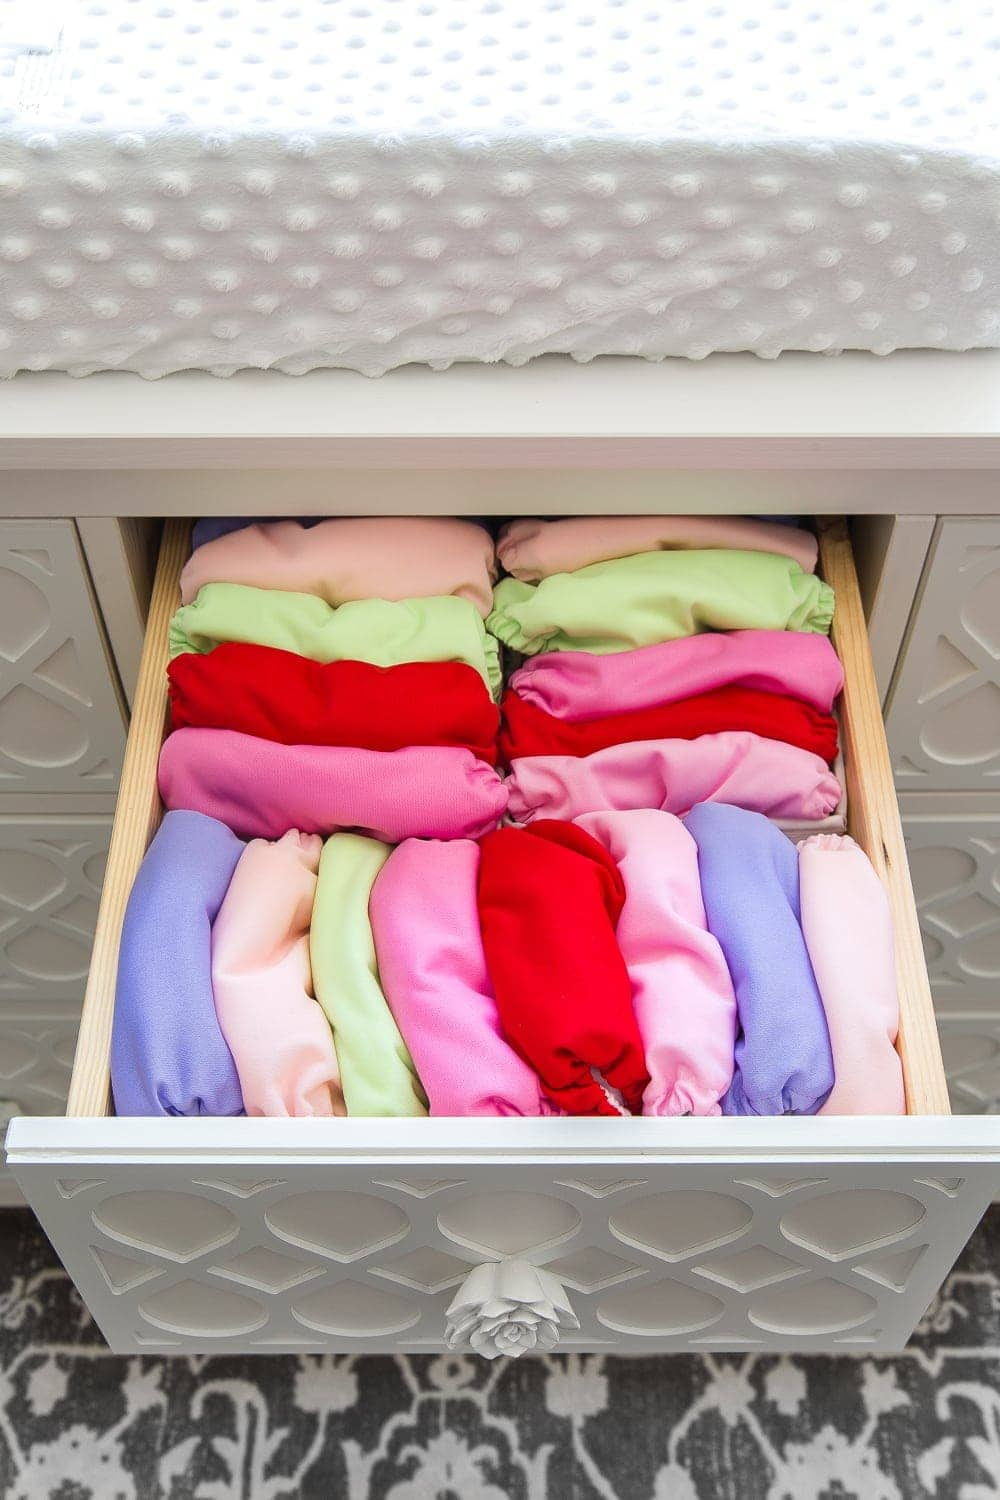 Nursery Organization | Dresser drawers with dividers to store cloth diaper covers